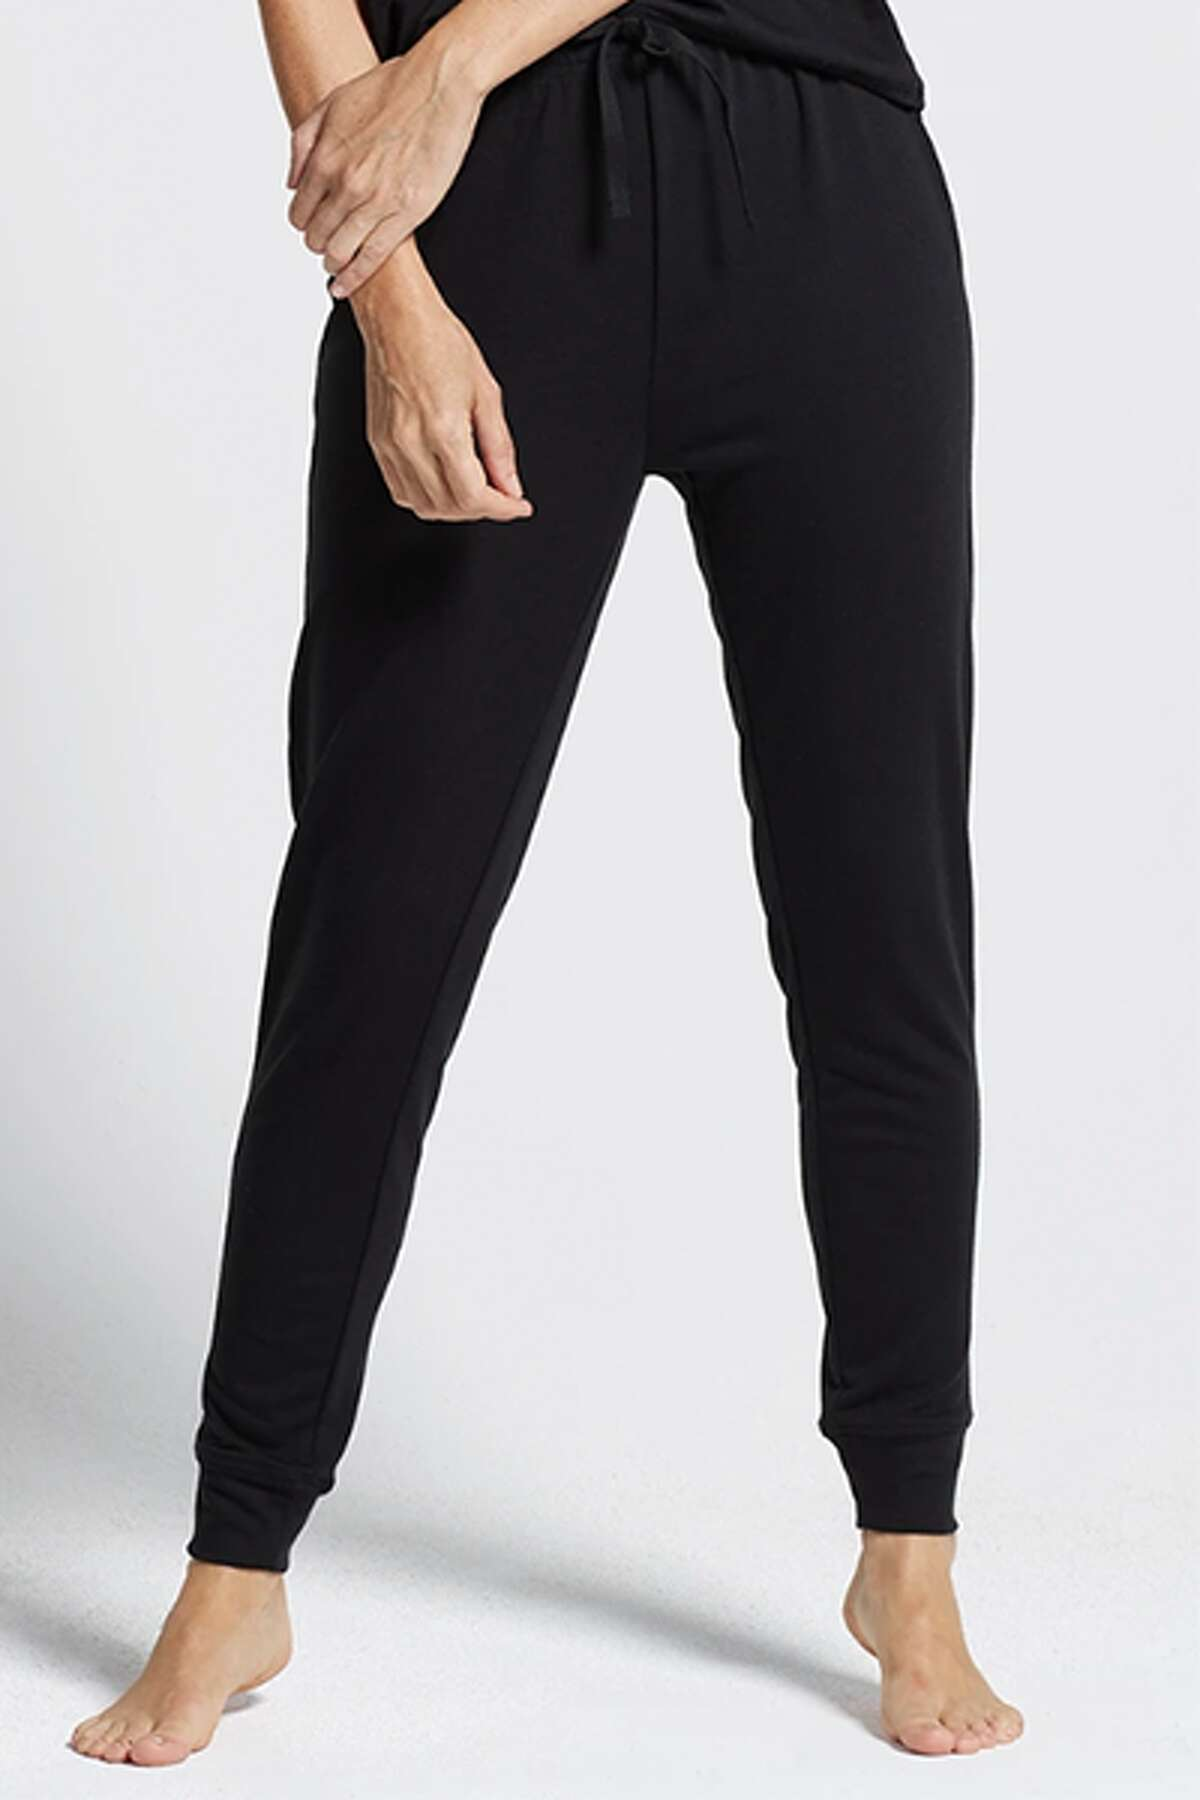 2) Baby French Terry Slim Leg Jogger: $42.00 Shop Now This pair comes highly recommended from one of our fashion editors, who says they are the perfect pair of everyday sweatpants. Reviewers online note they are true to size and feel as soft as butter!